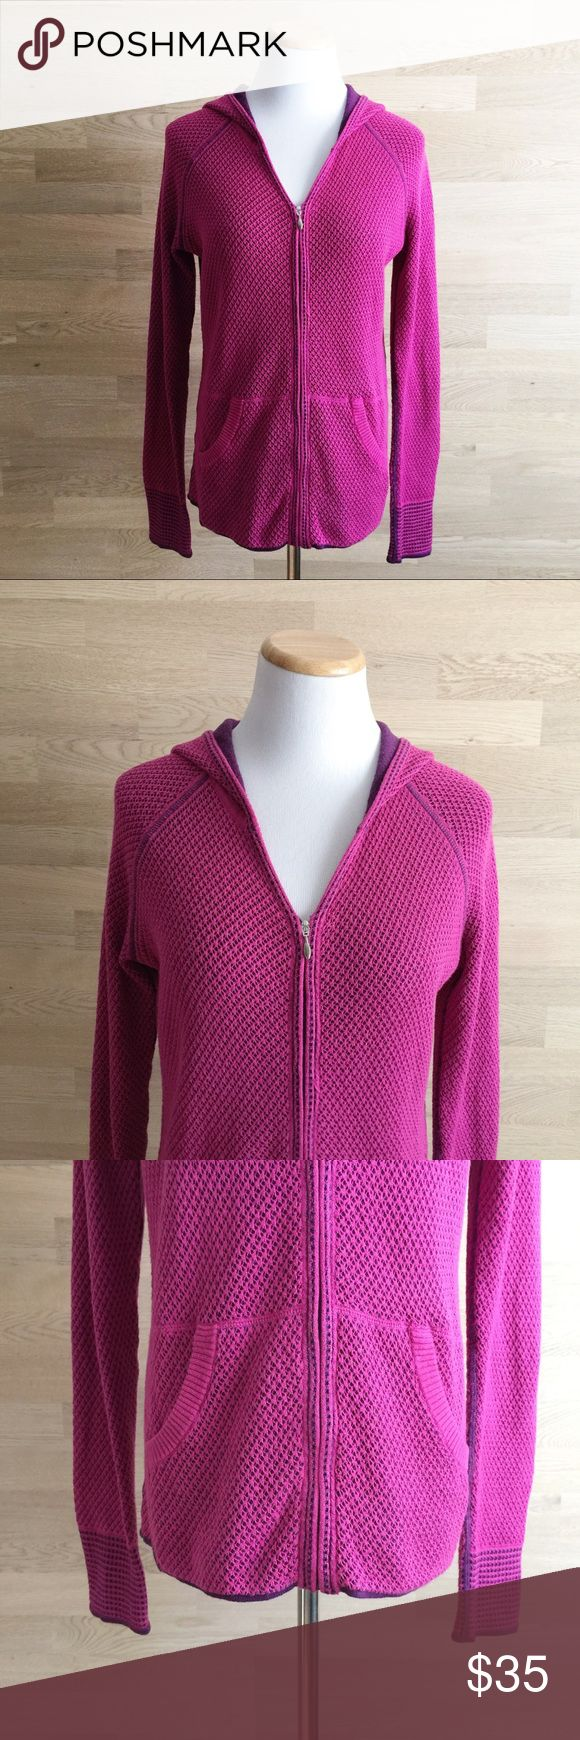 "Title Nine Zip Up Hoodie Sweater Size Small Purple/pink zip up hoodie. Sweater/fleece/sweatshirt hybrid. Light weight. V-neck. Crochet knit top layer. Purple lining. Front pockets. Silver tone hardware. Underarm to underarm 18"", sleeve length 28.5"", total length 25"". Great sweater for cool summer nights. Preowned. No issues. A02 Title Nine Sweaters"